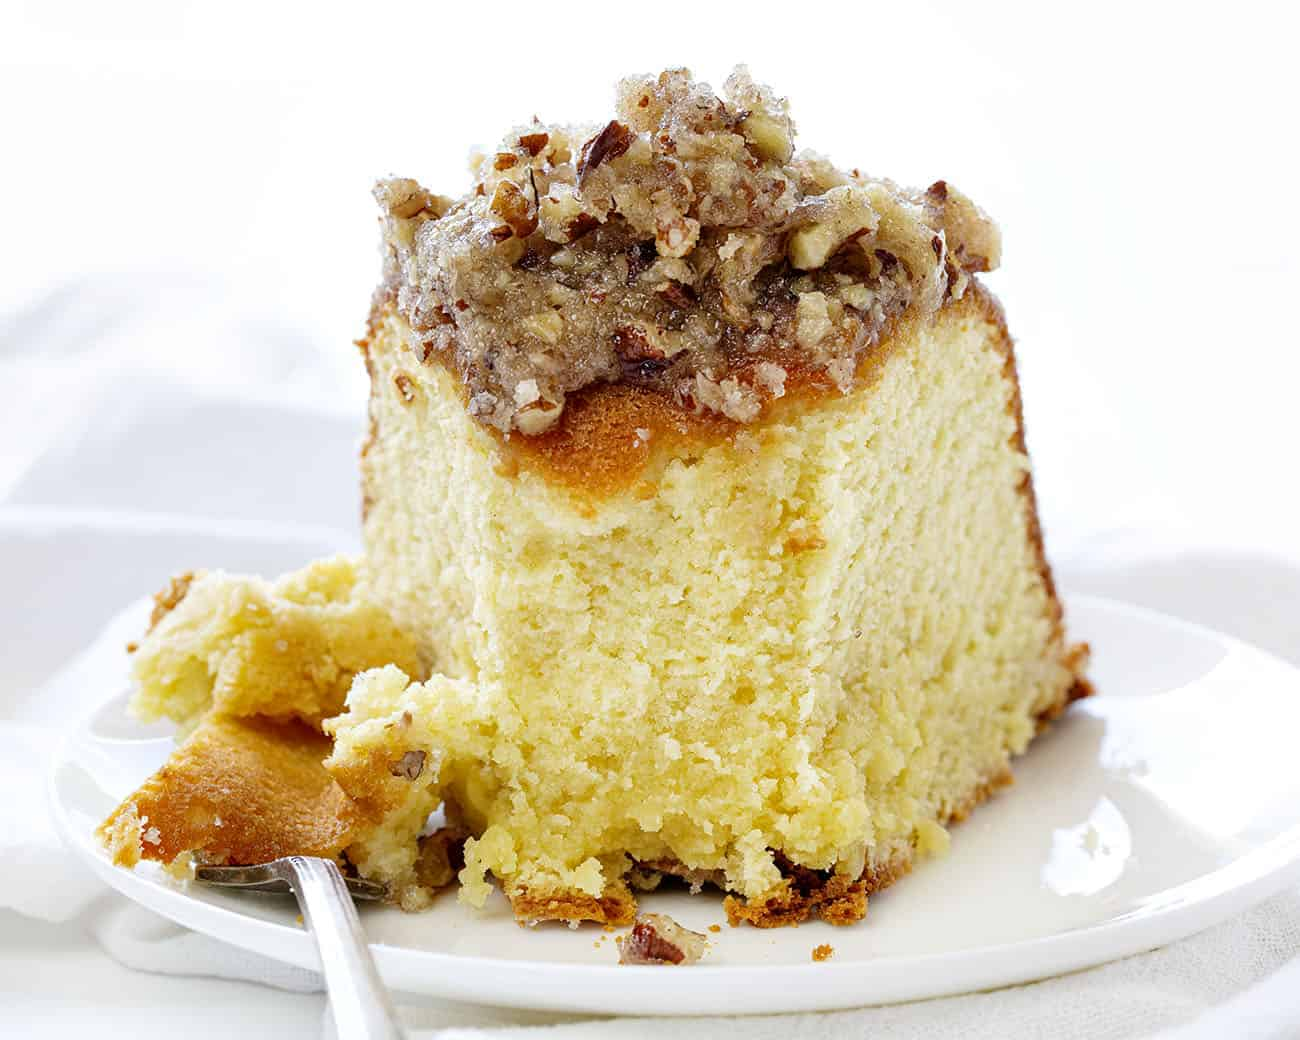 Slice of Kentucky Butter Crunch Cake with a Bite Removed